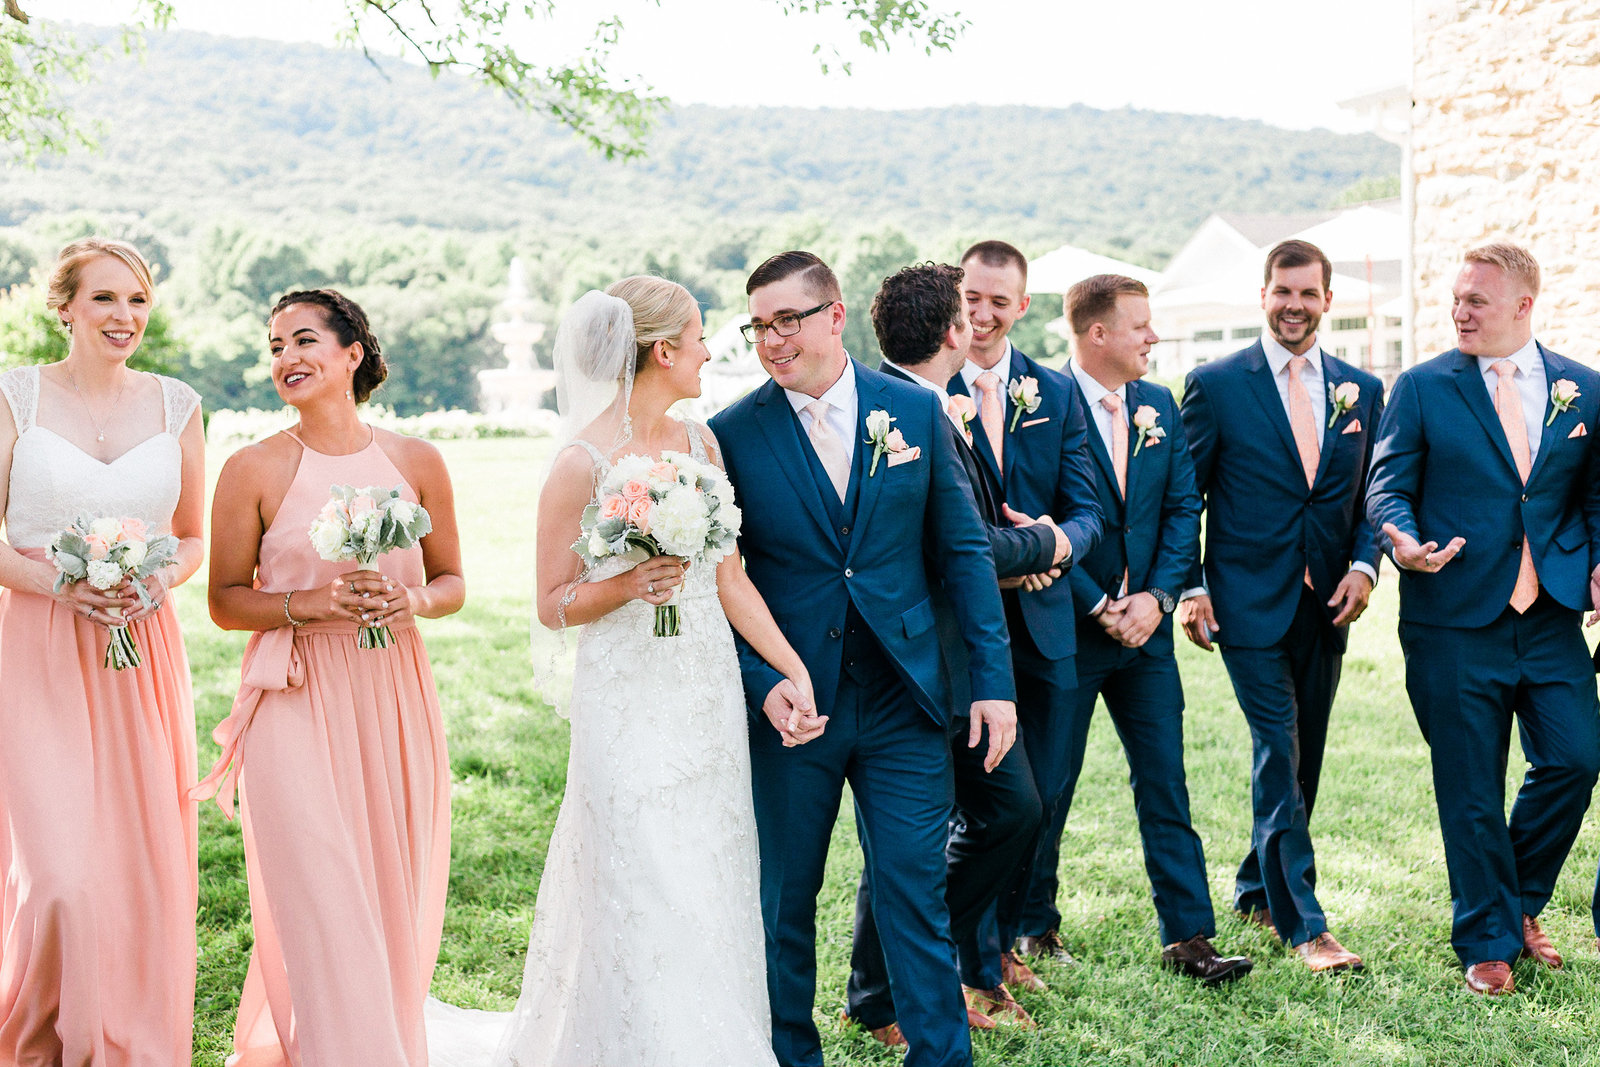 Bridal party in pink dresses and navy suits  walk with the bride and groom at Springfield Manor Maryland